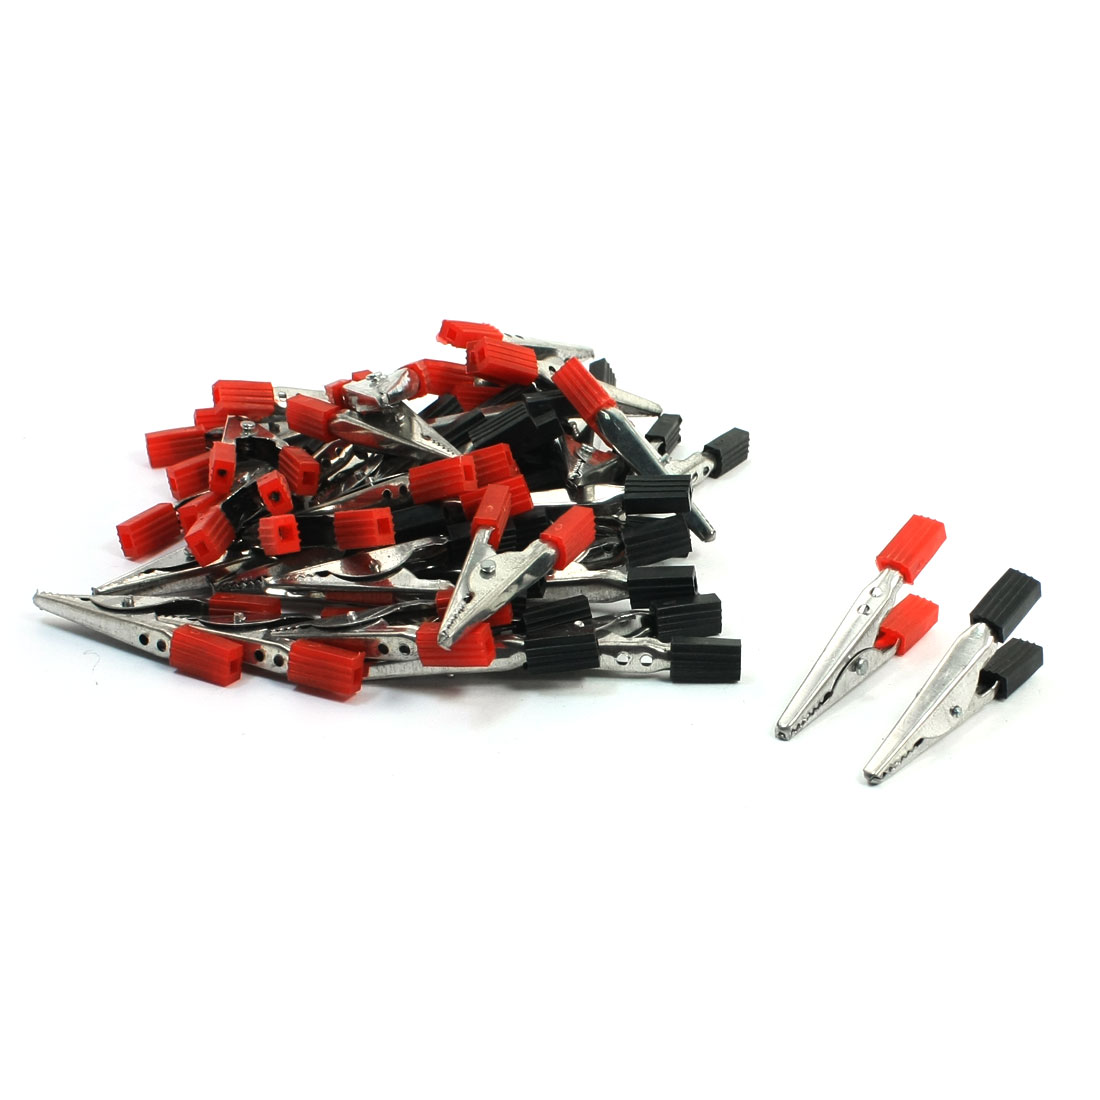 40Pcs Black Red Grip Electric Test Crocodile Alligator Clips Clamps 50mm